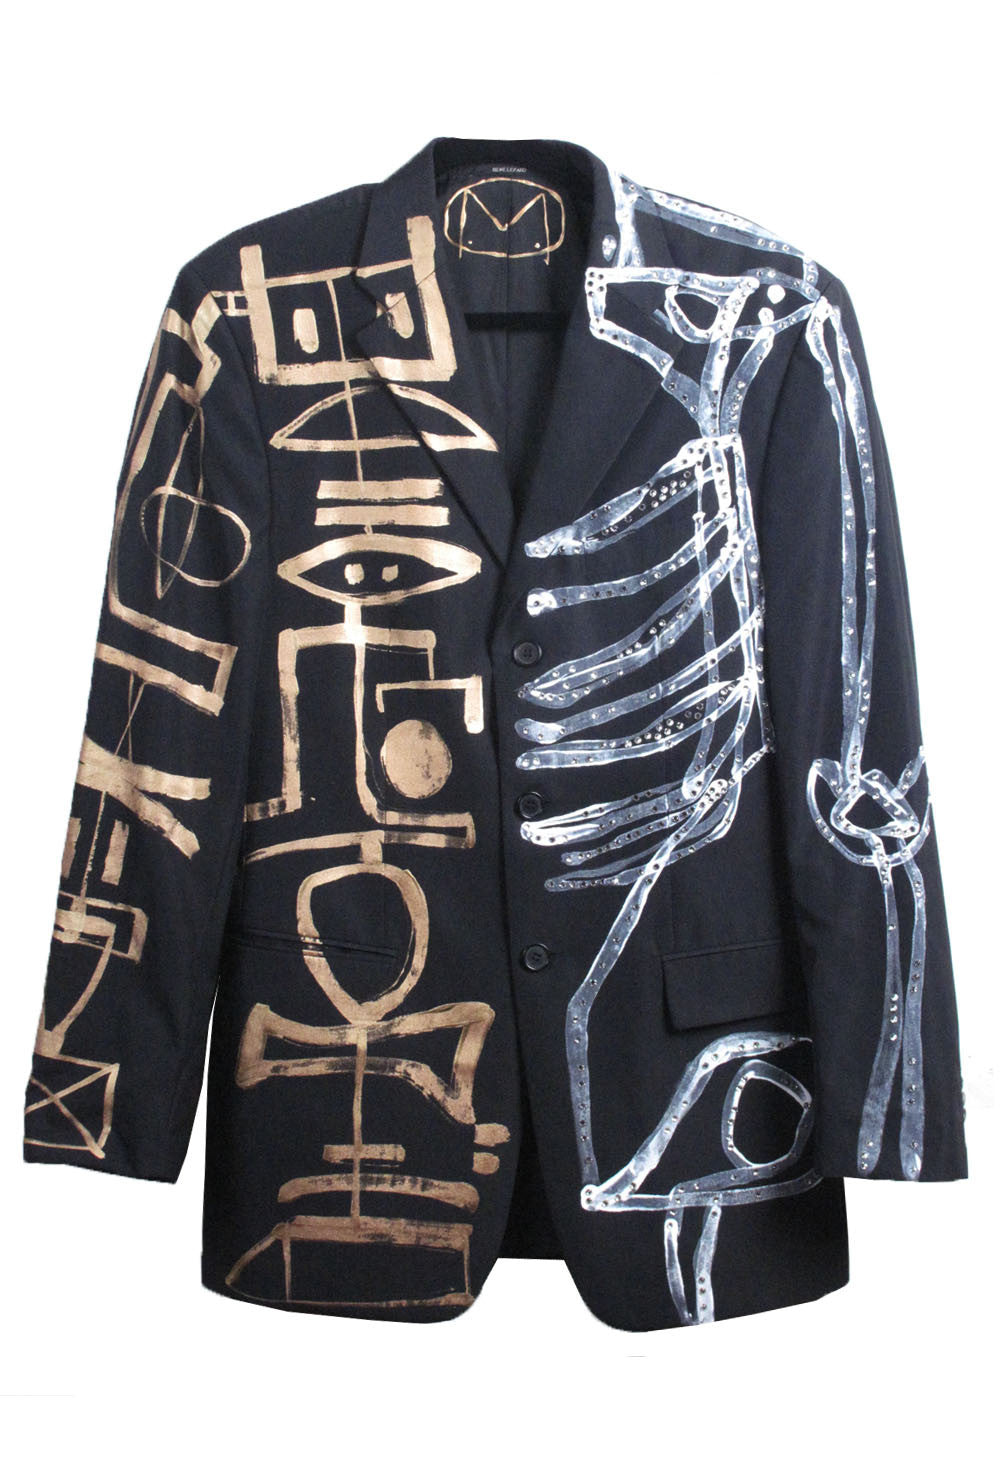 Jody MORLOCK 'HALF SKELETON' Painted Men's Suit - IMMEDIATE DELIVERY SIZE US 38 Euro 48